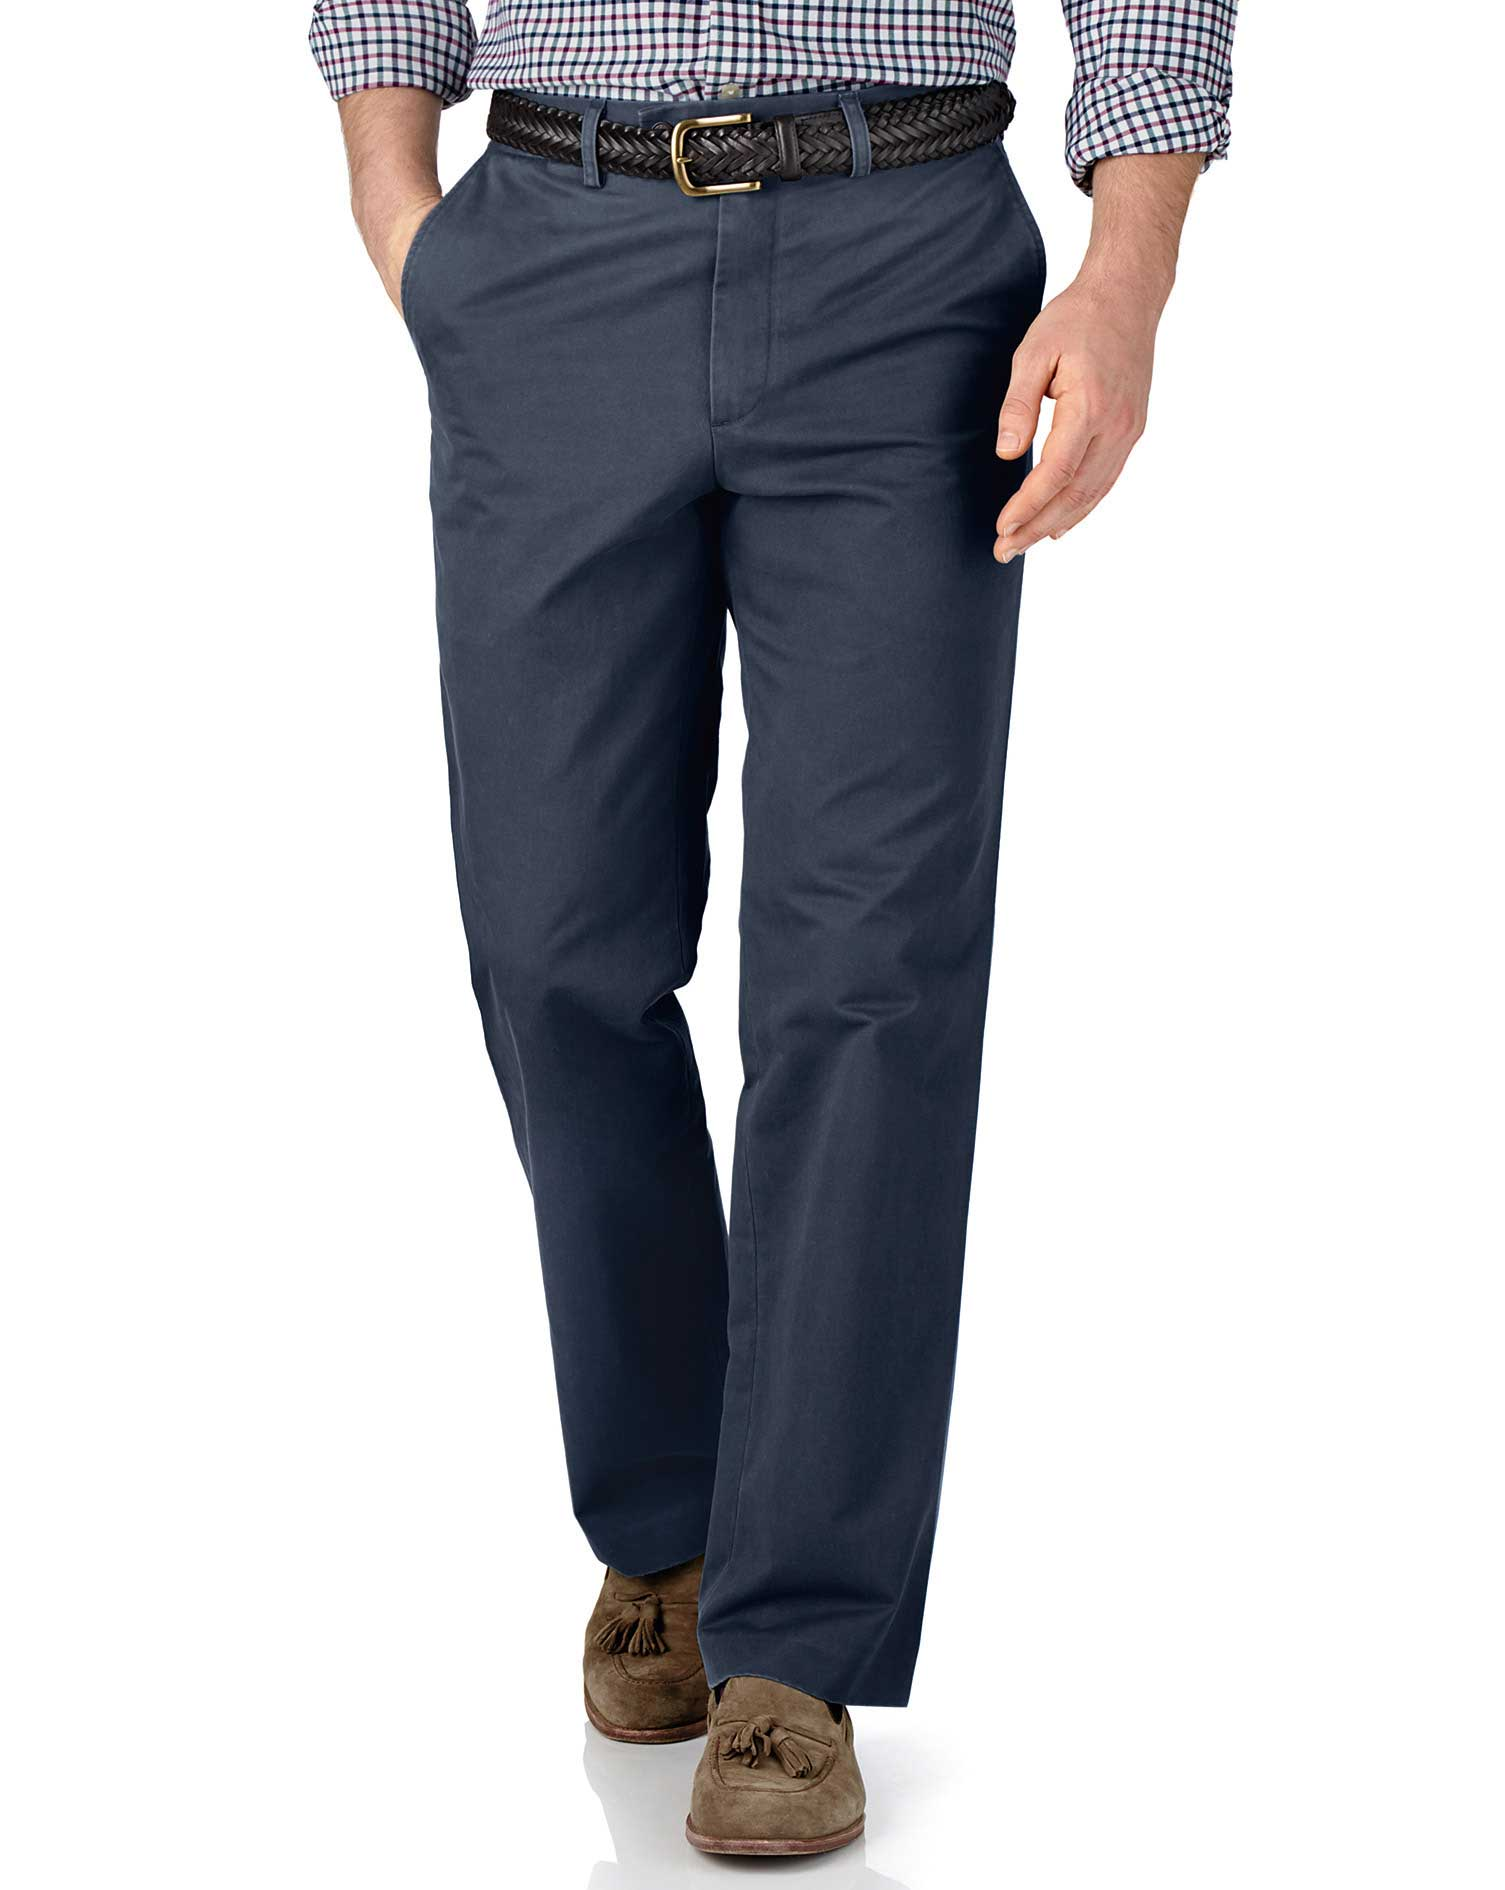 Airforce Blue Classic Fit Flat Front Cotton Chino Trousers Size W32 L29 by Charles Tyrwhitt